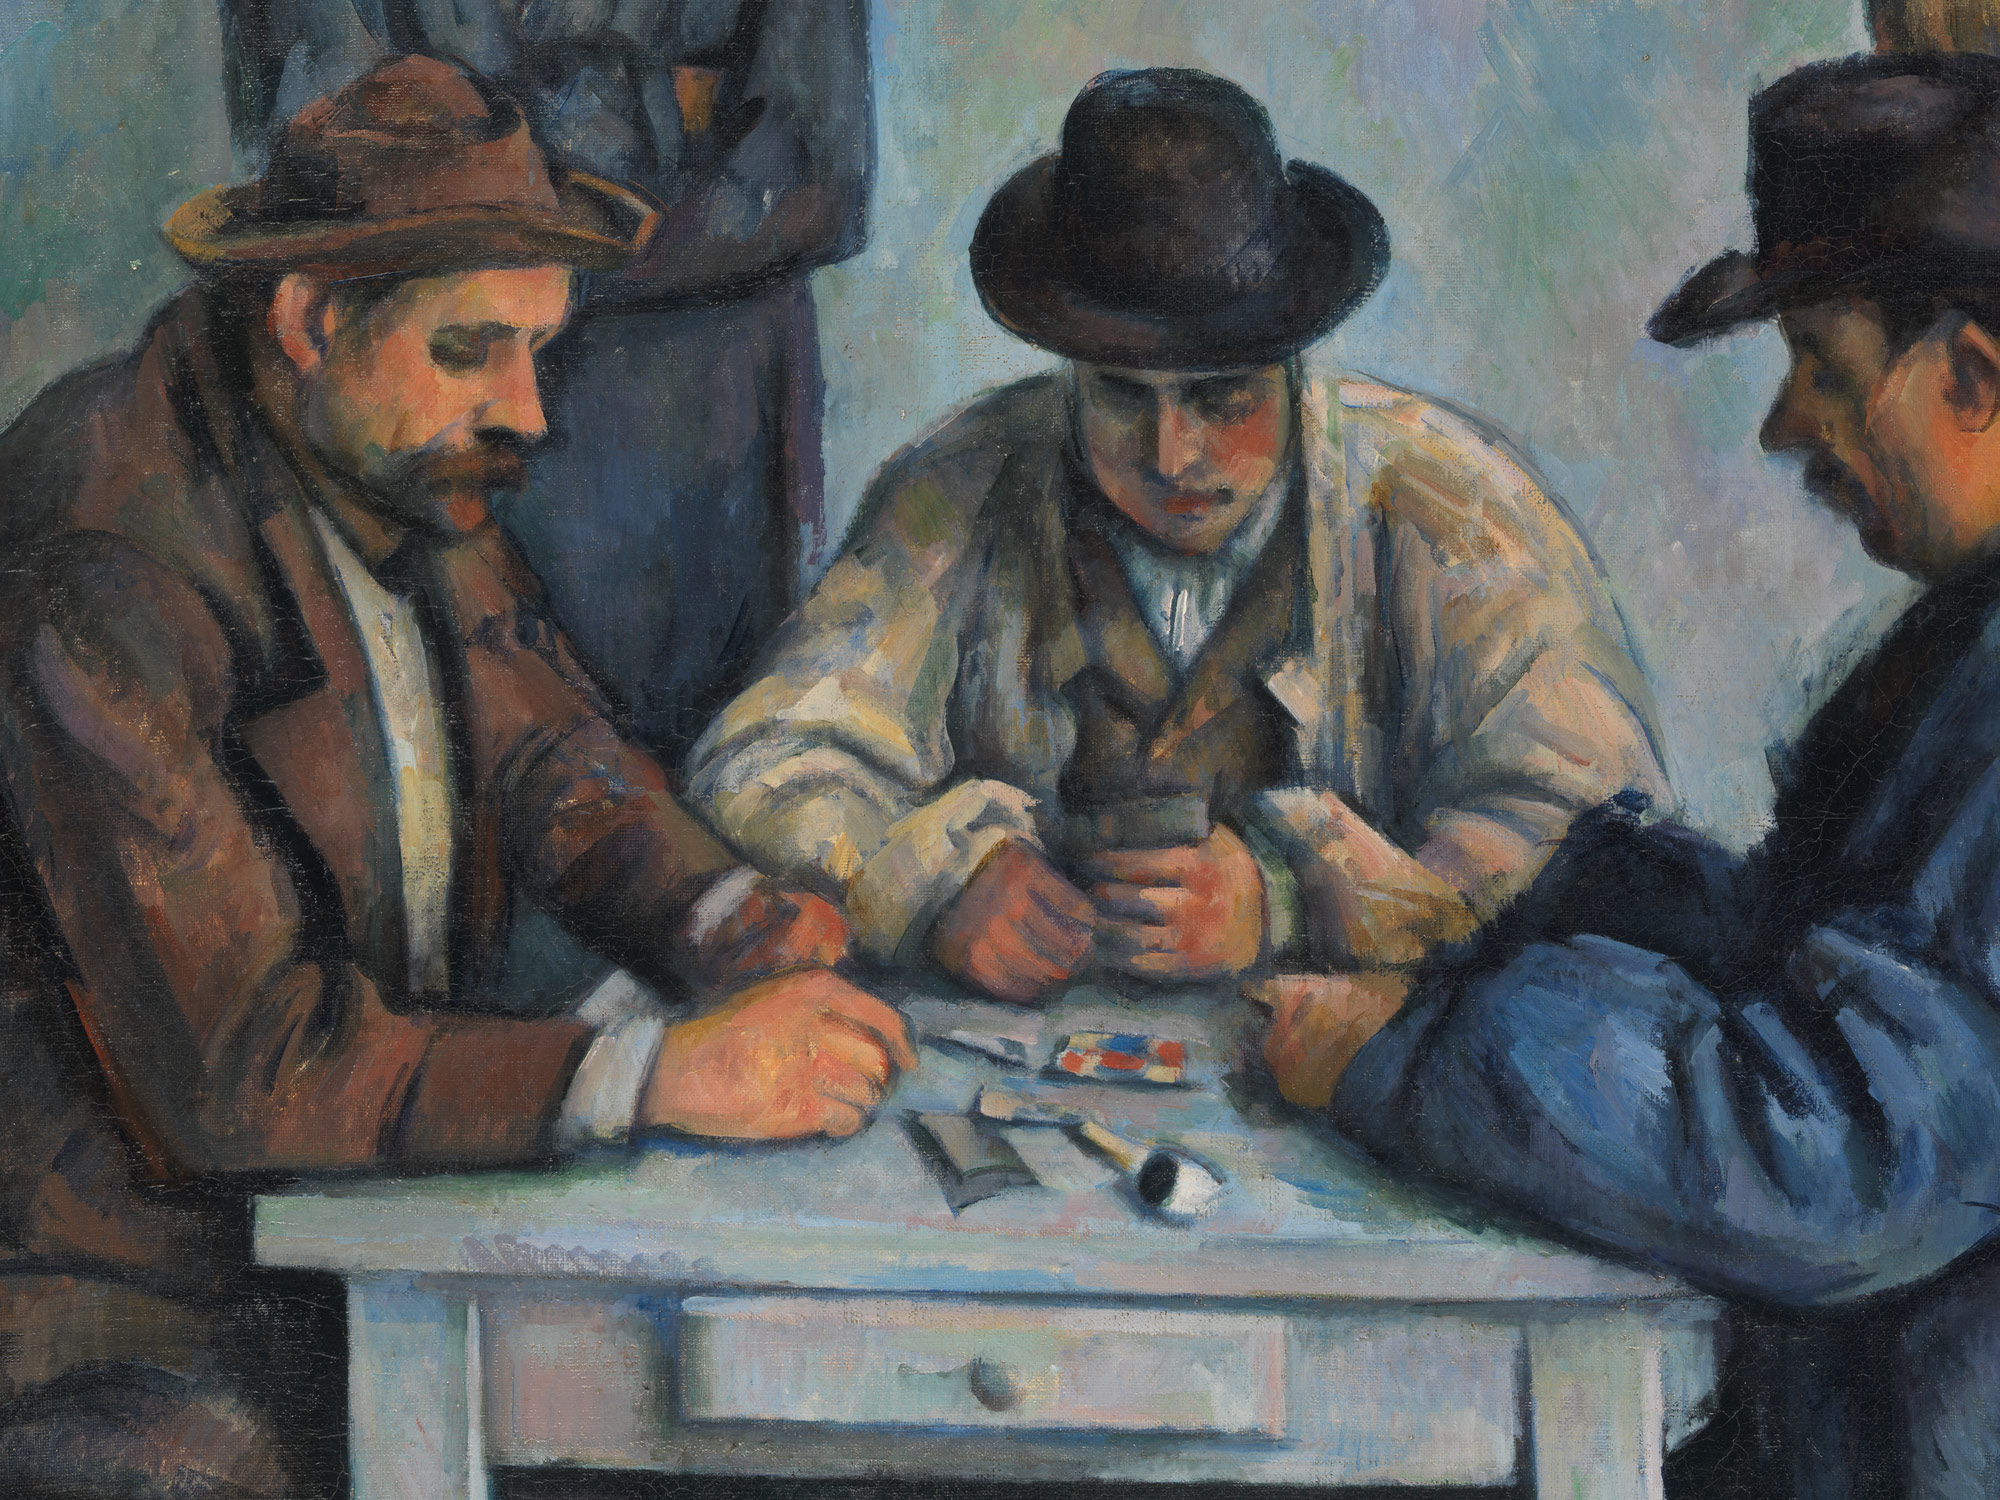 The Card Players Paul Cézanne Work Of Art Heilbrunn - Who painted the card players